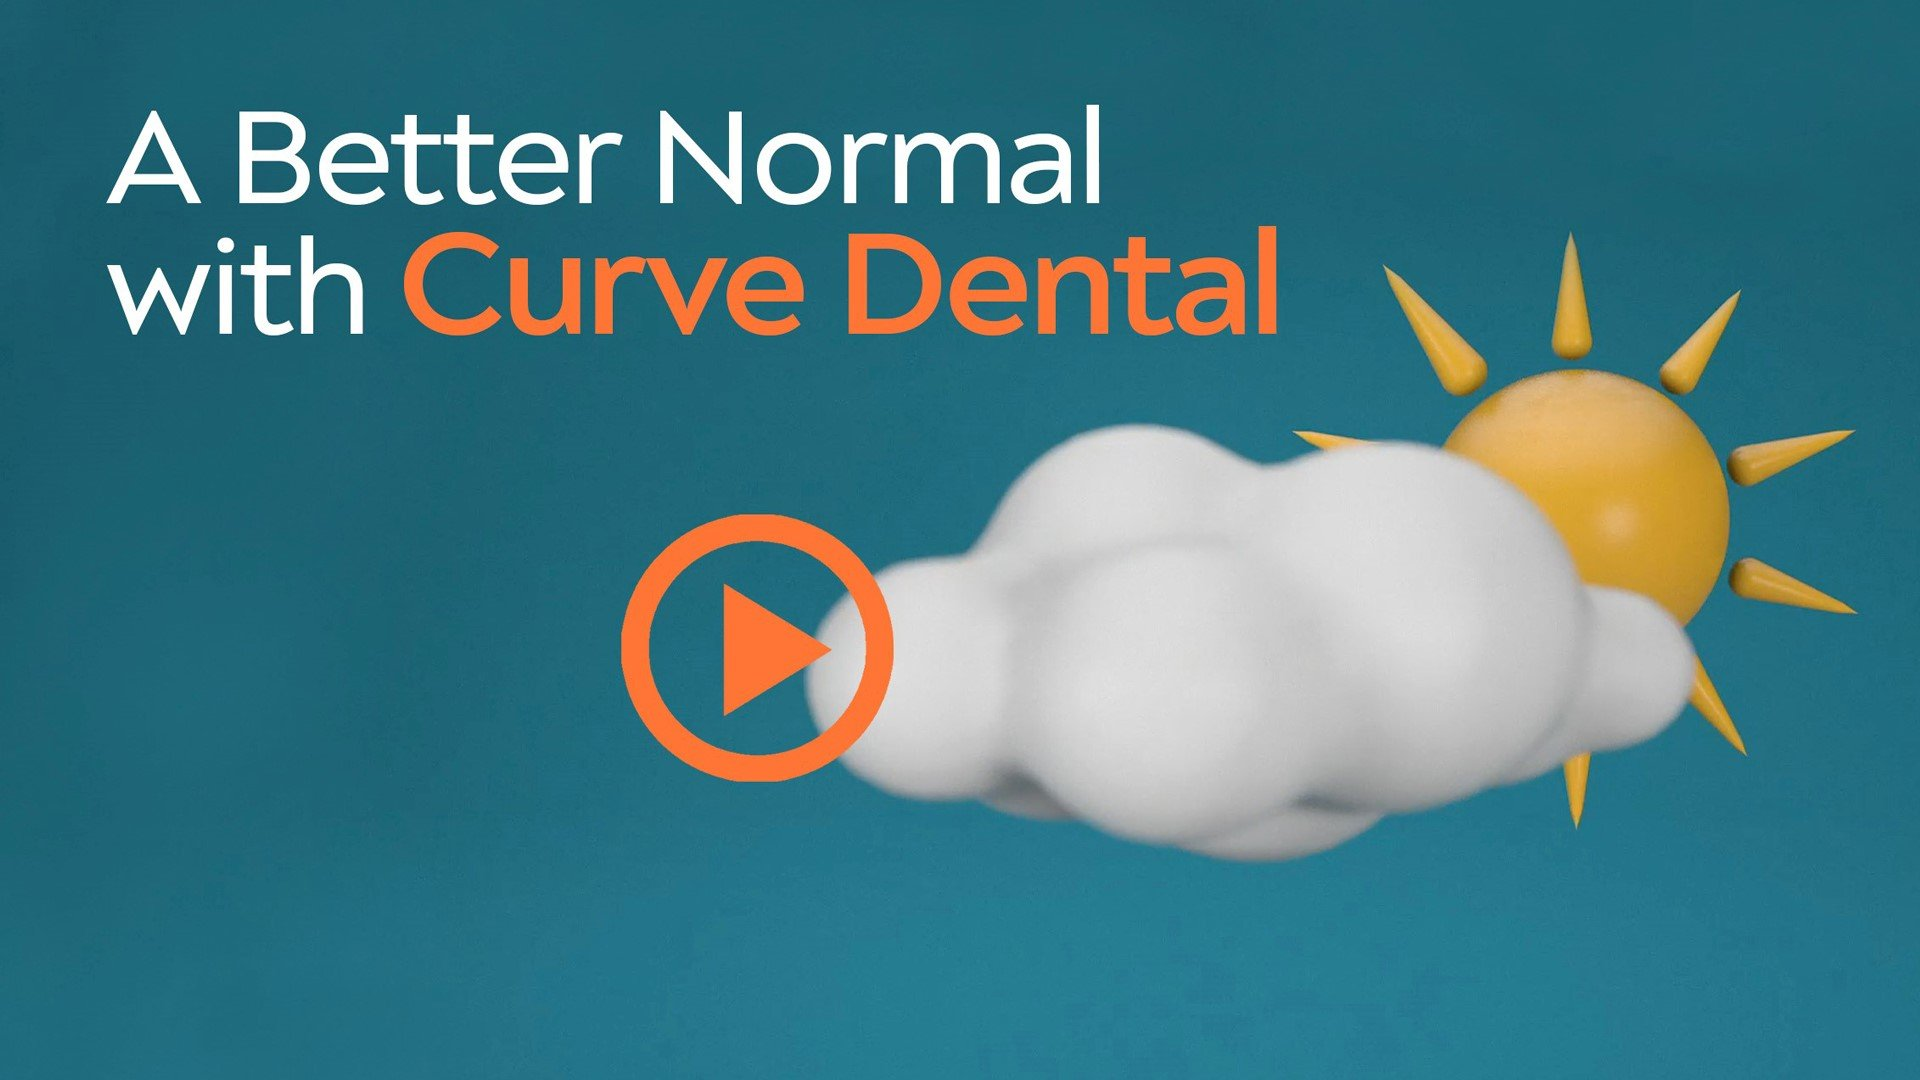 A Better Normal with Curve Dental